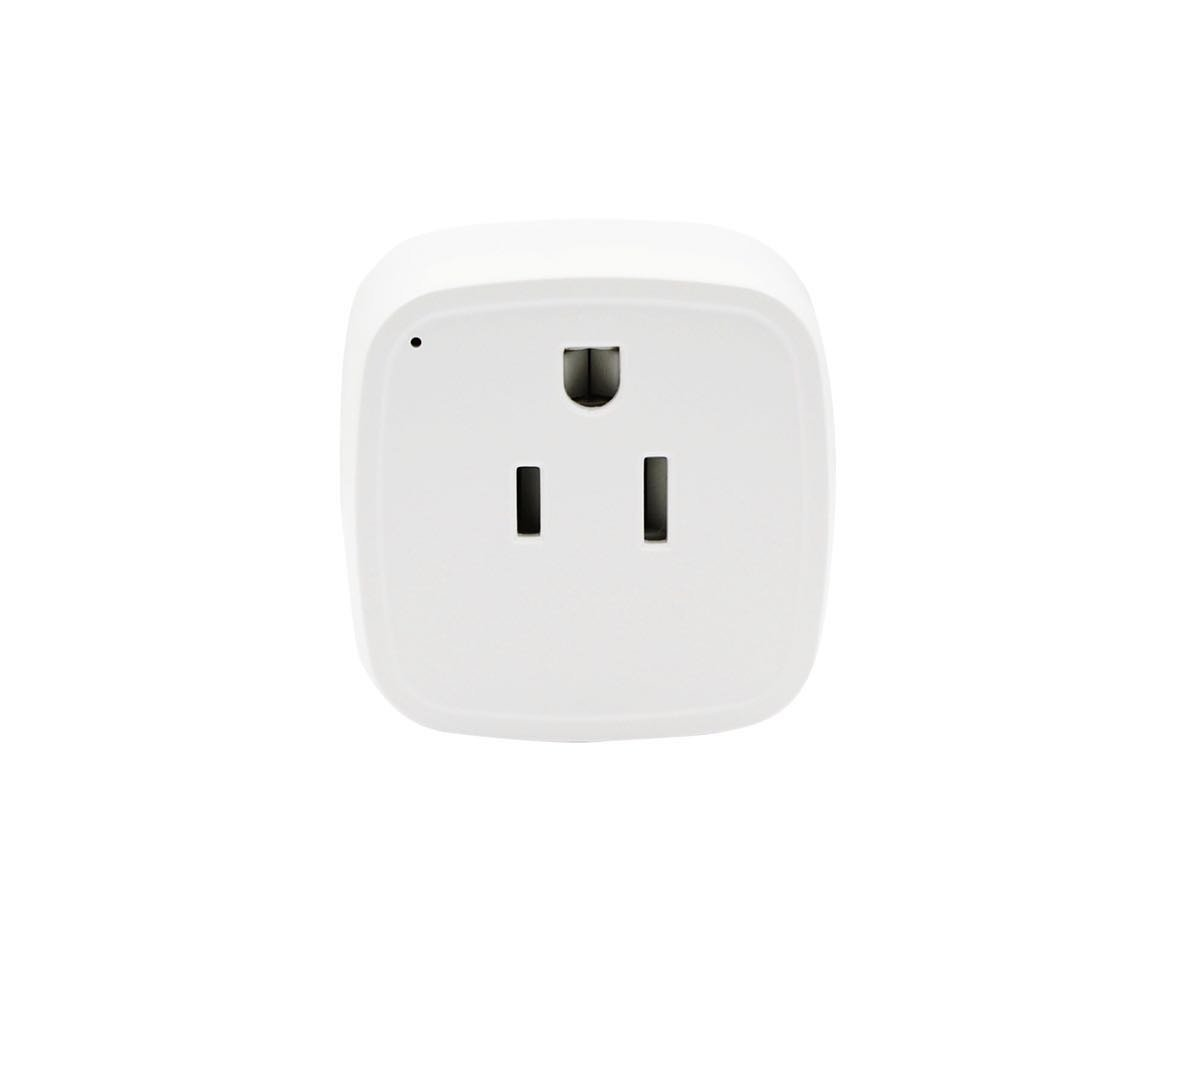 YOURUN Smart Plug Compatible with Alexa, Google Home, Mini Outlet Wifi Smart Socket with No Hub Required, Timing, Control Your Devices from Anywhere, ETL Listed,2-Pack